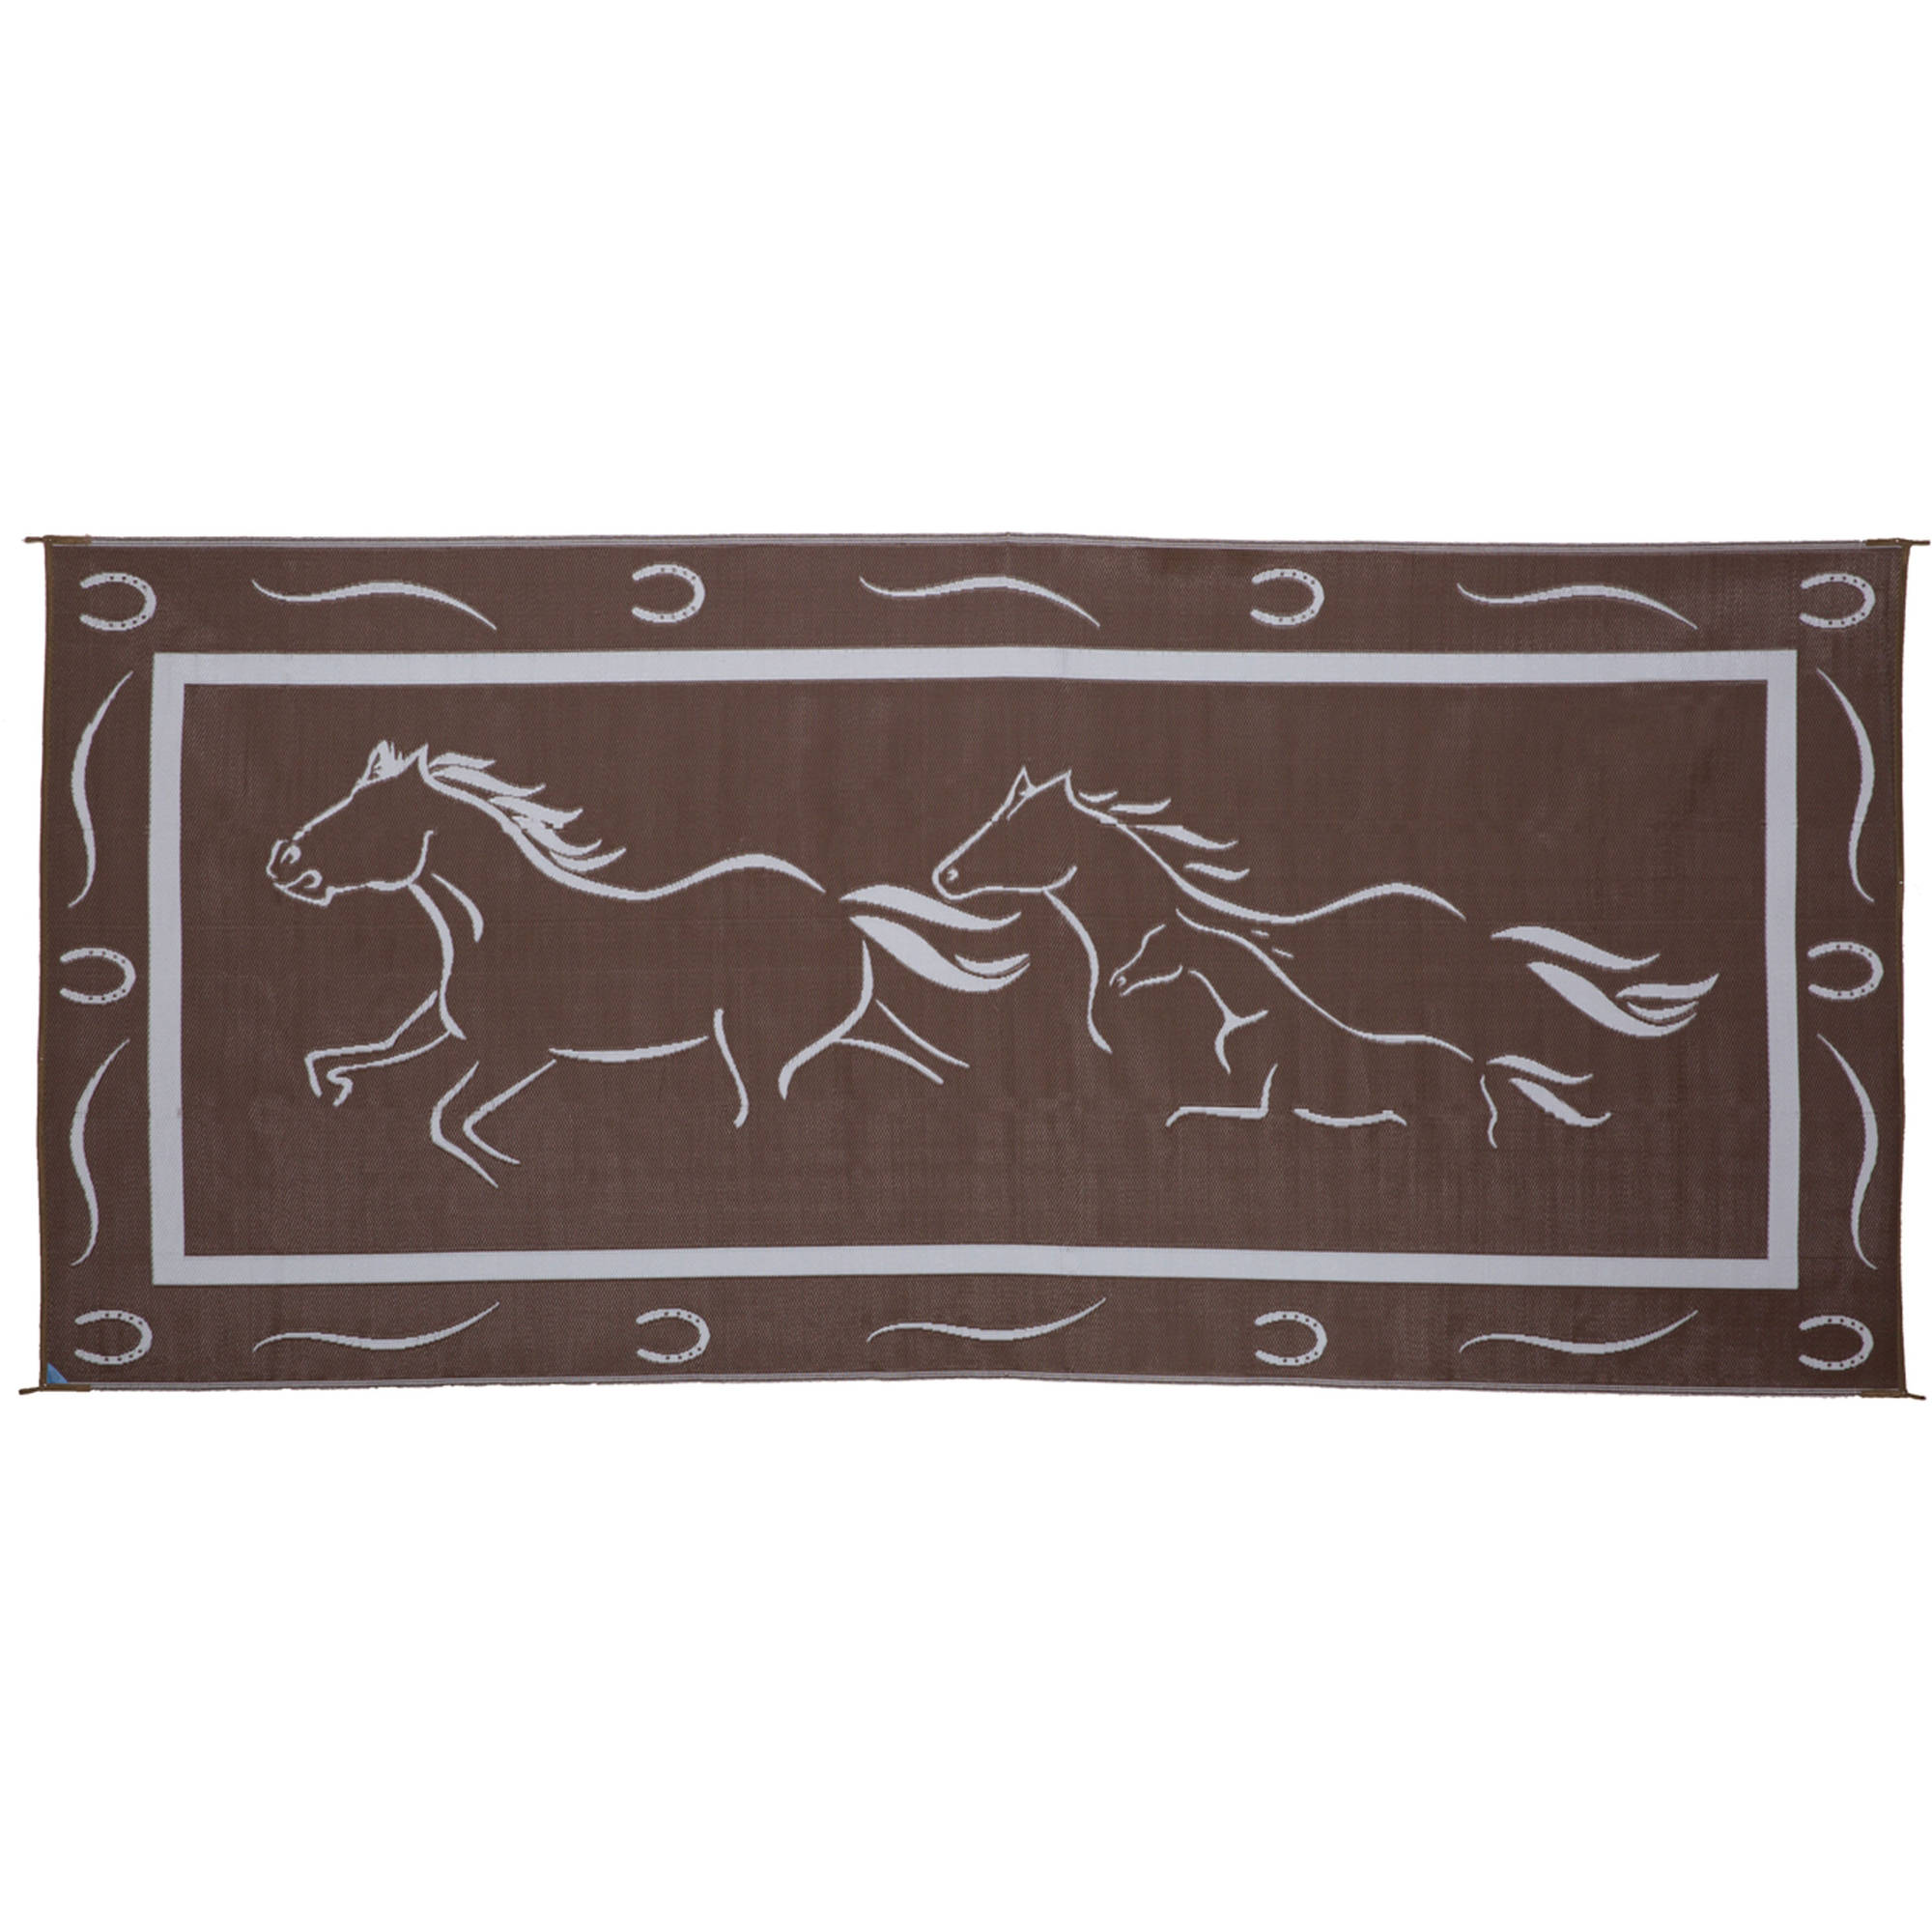 Ming's Mark GH8117 8' x 11' Galloping Horses Mat, Brown/White